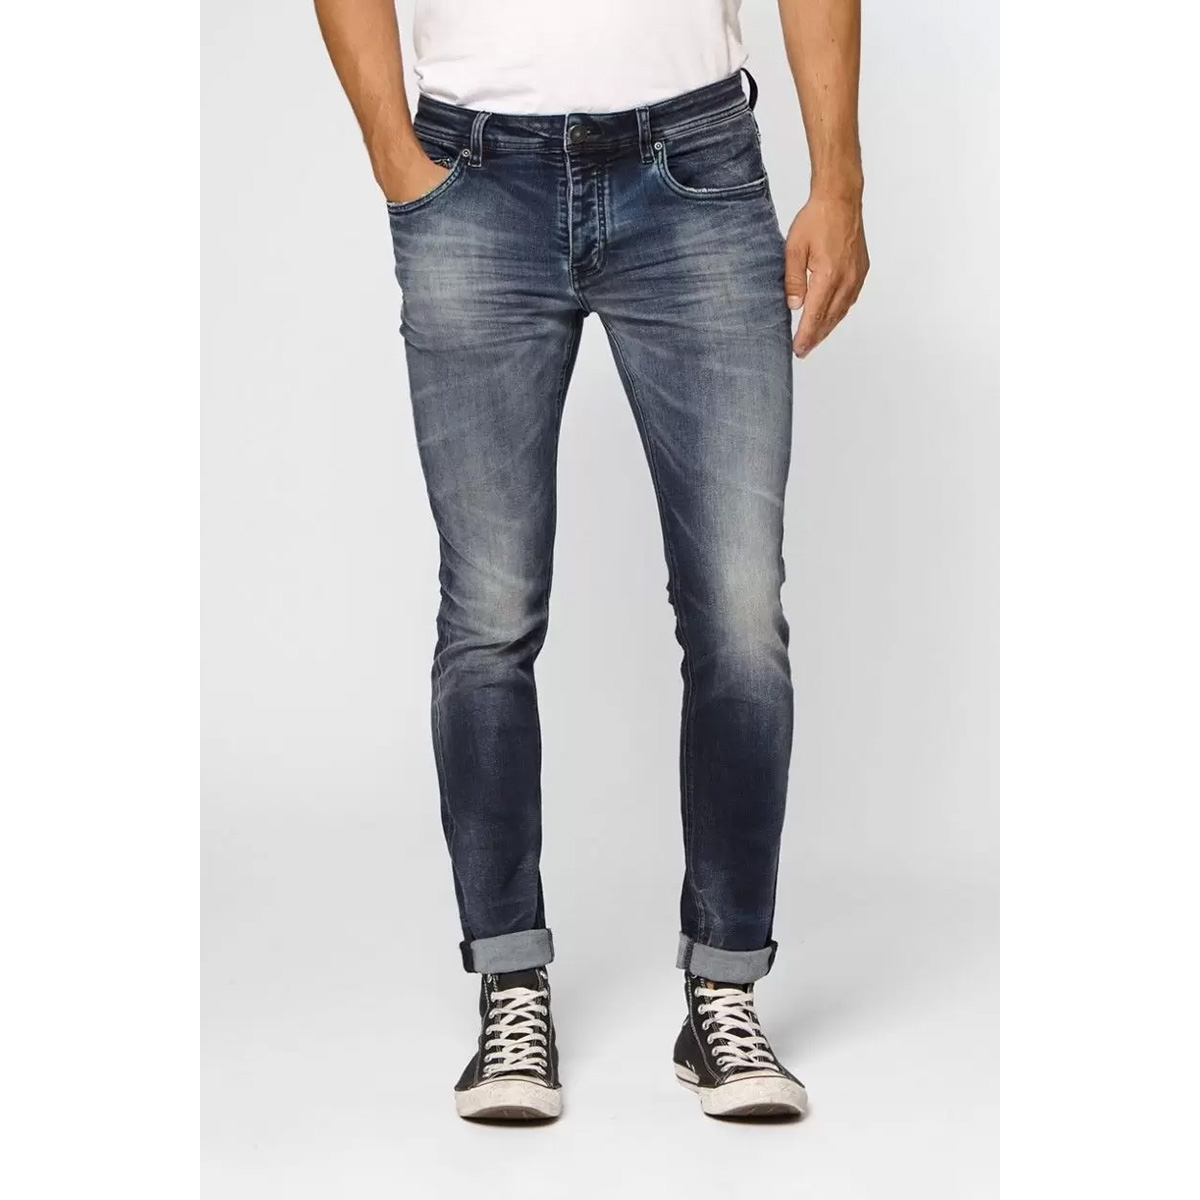 jagger hs20 10 circle of trust jeans 5106 miami blue